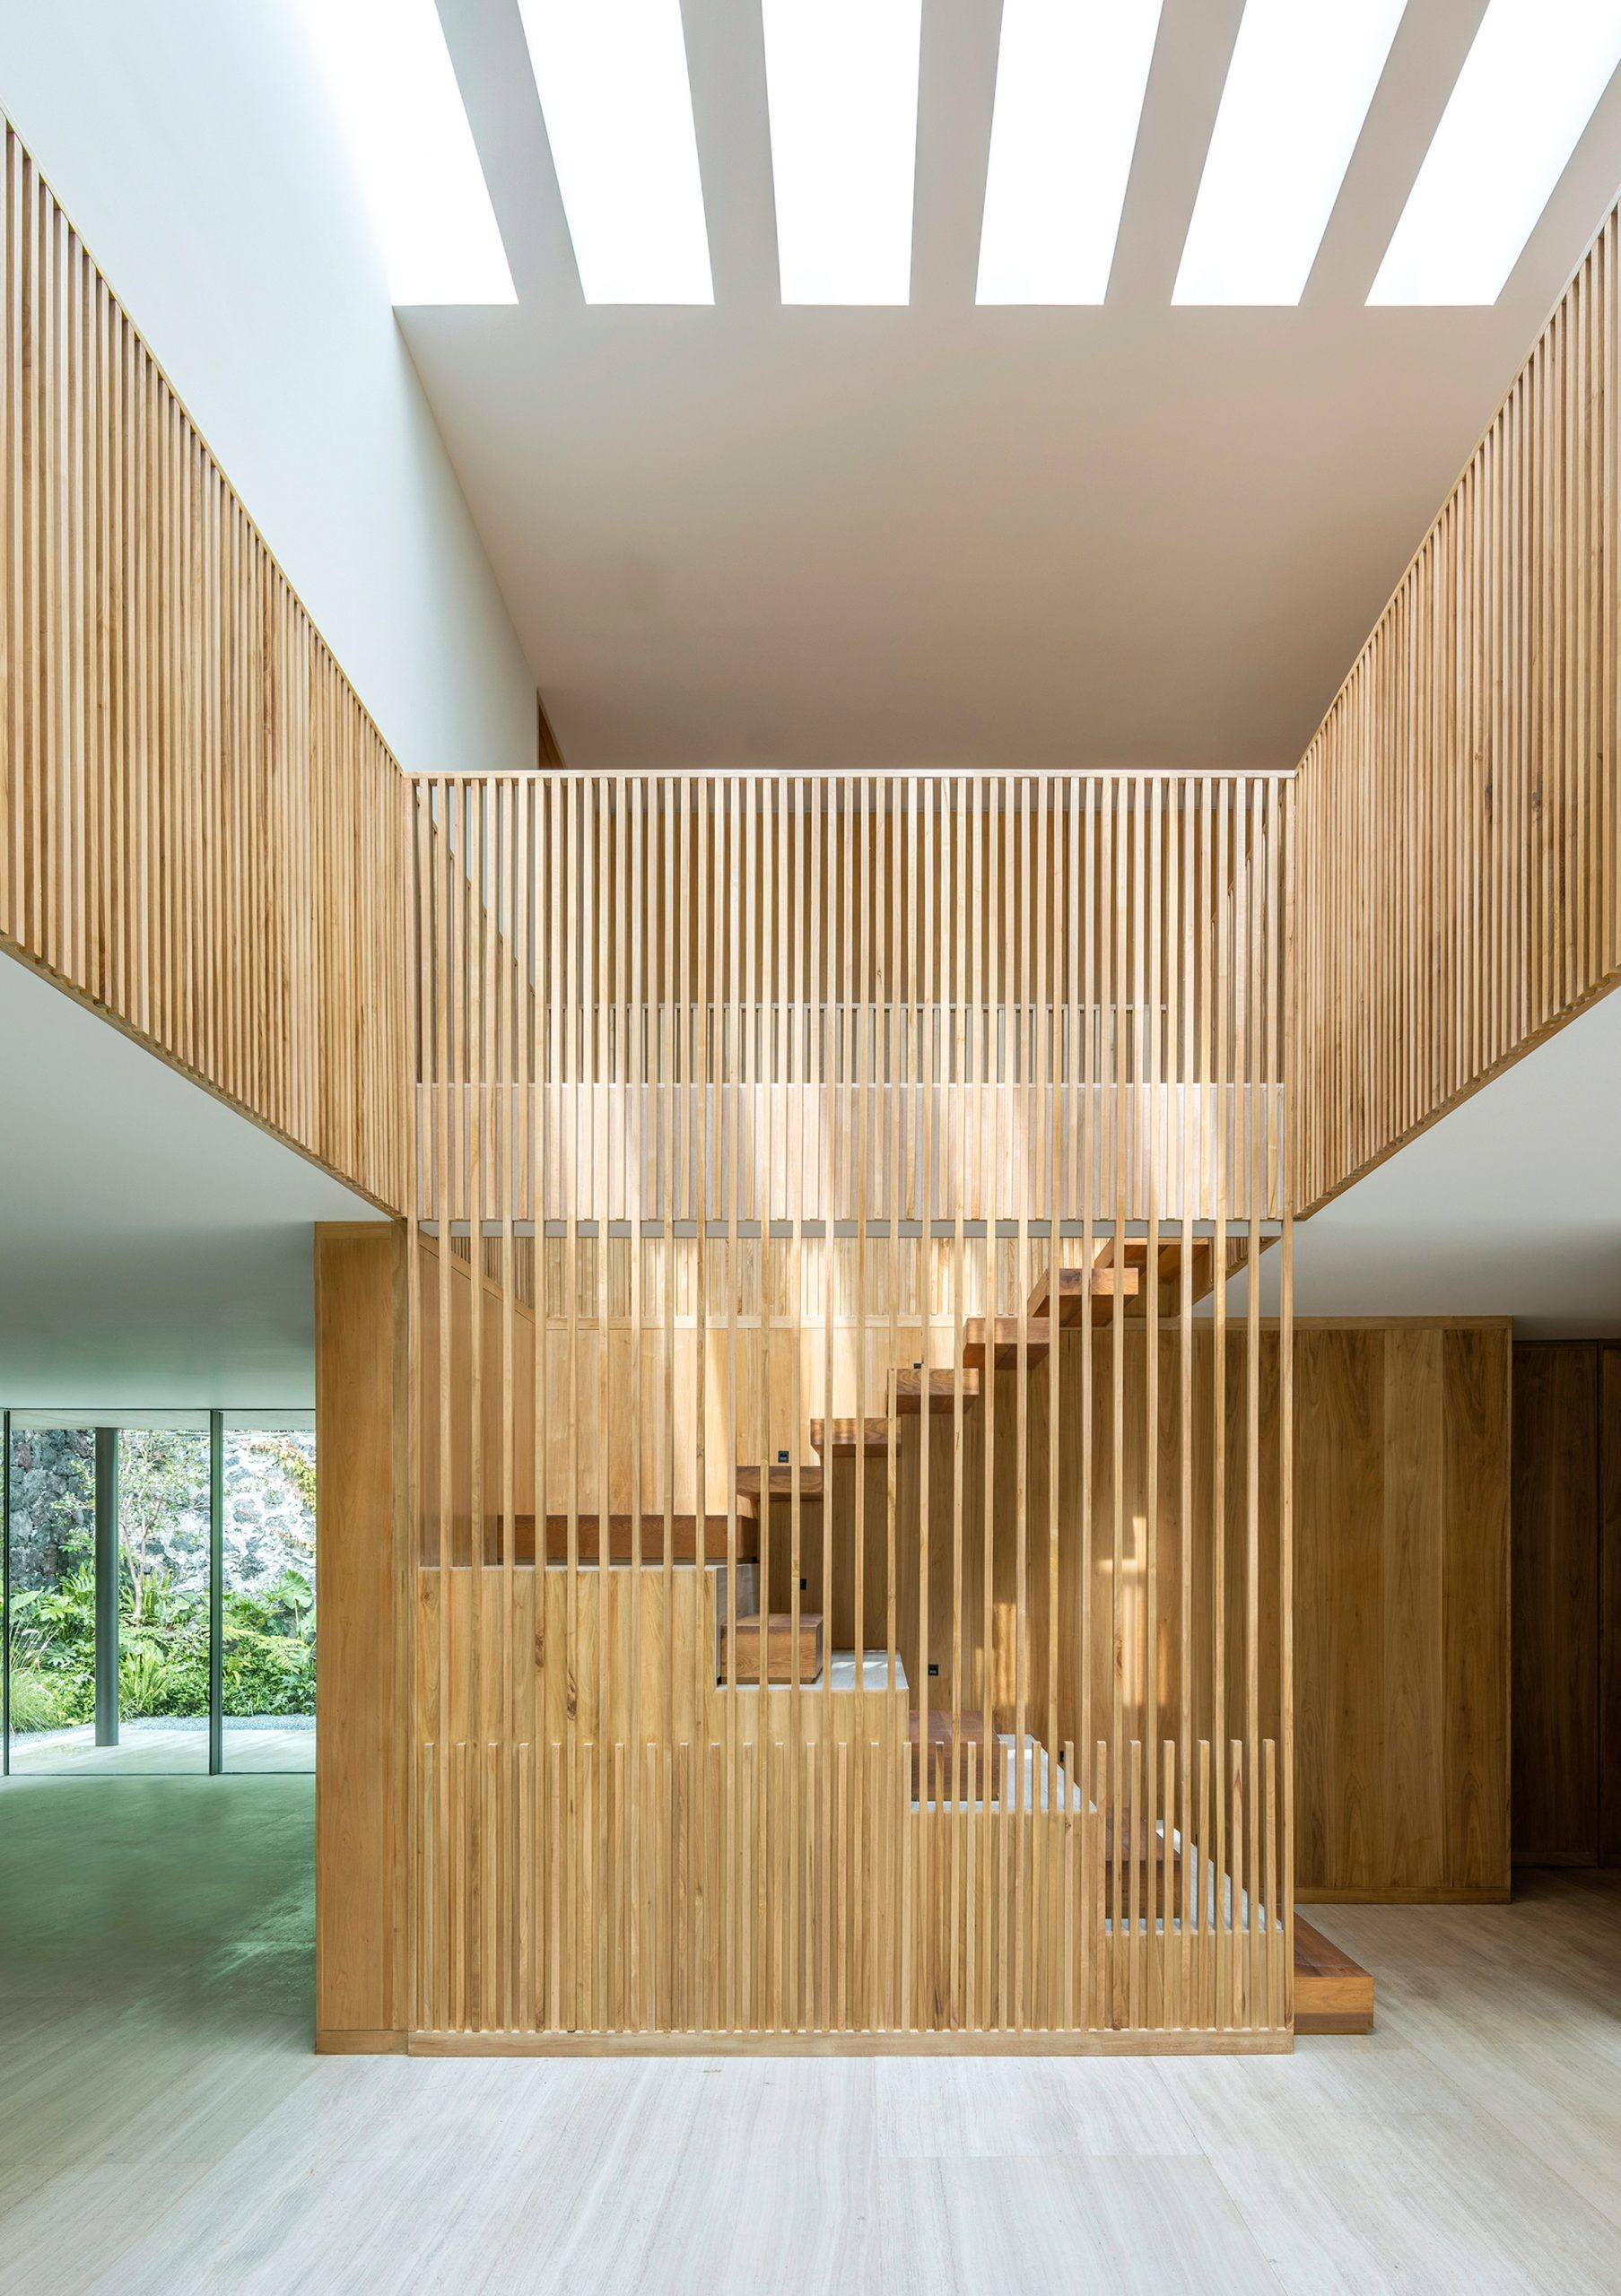 Wooden staircase in house renovation by Viga Arquitectos